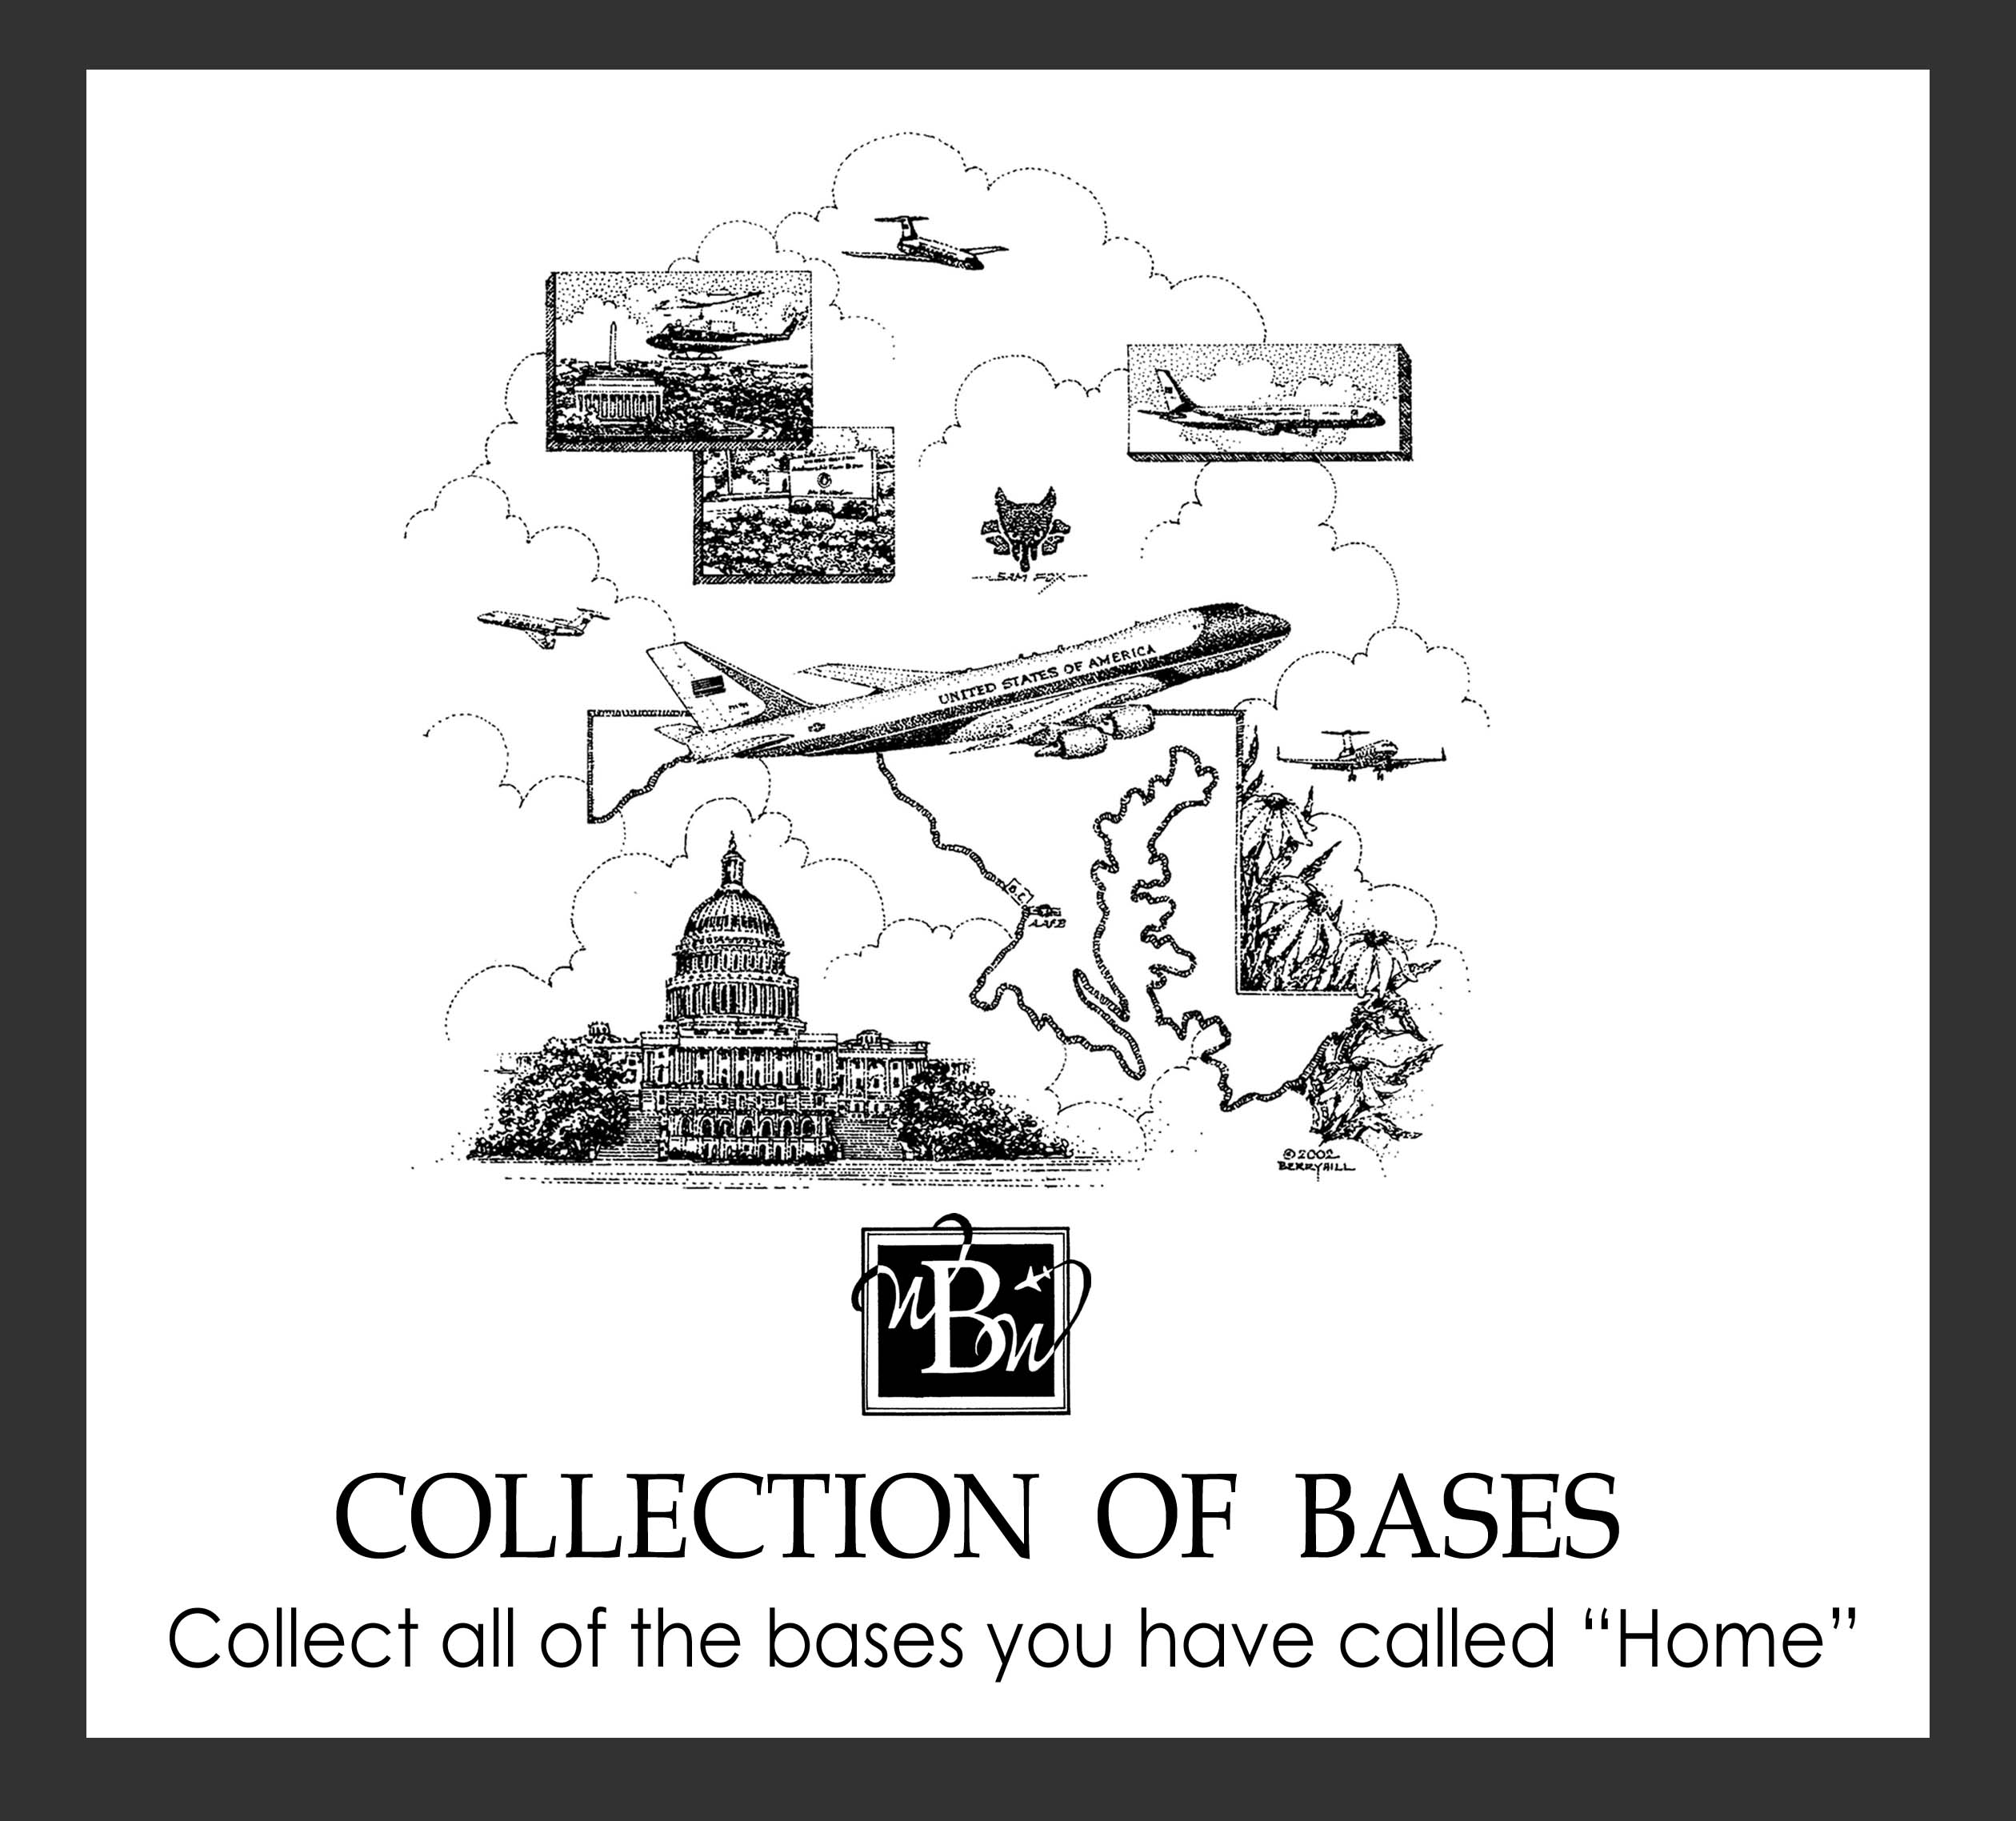 collection of bases